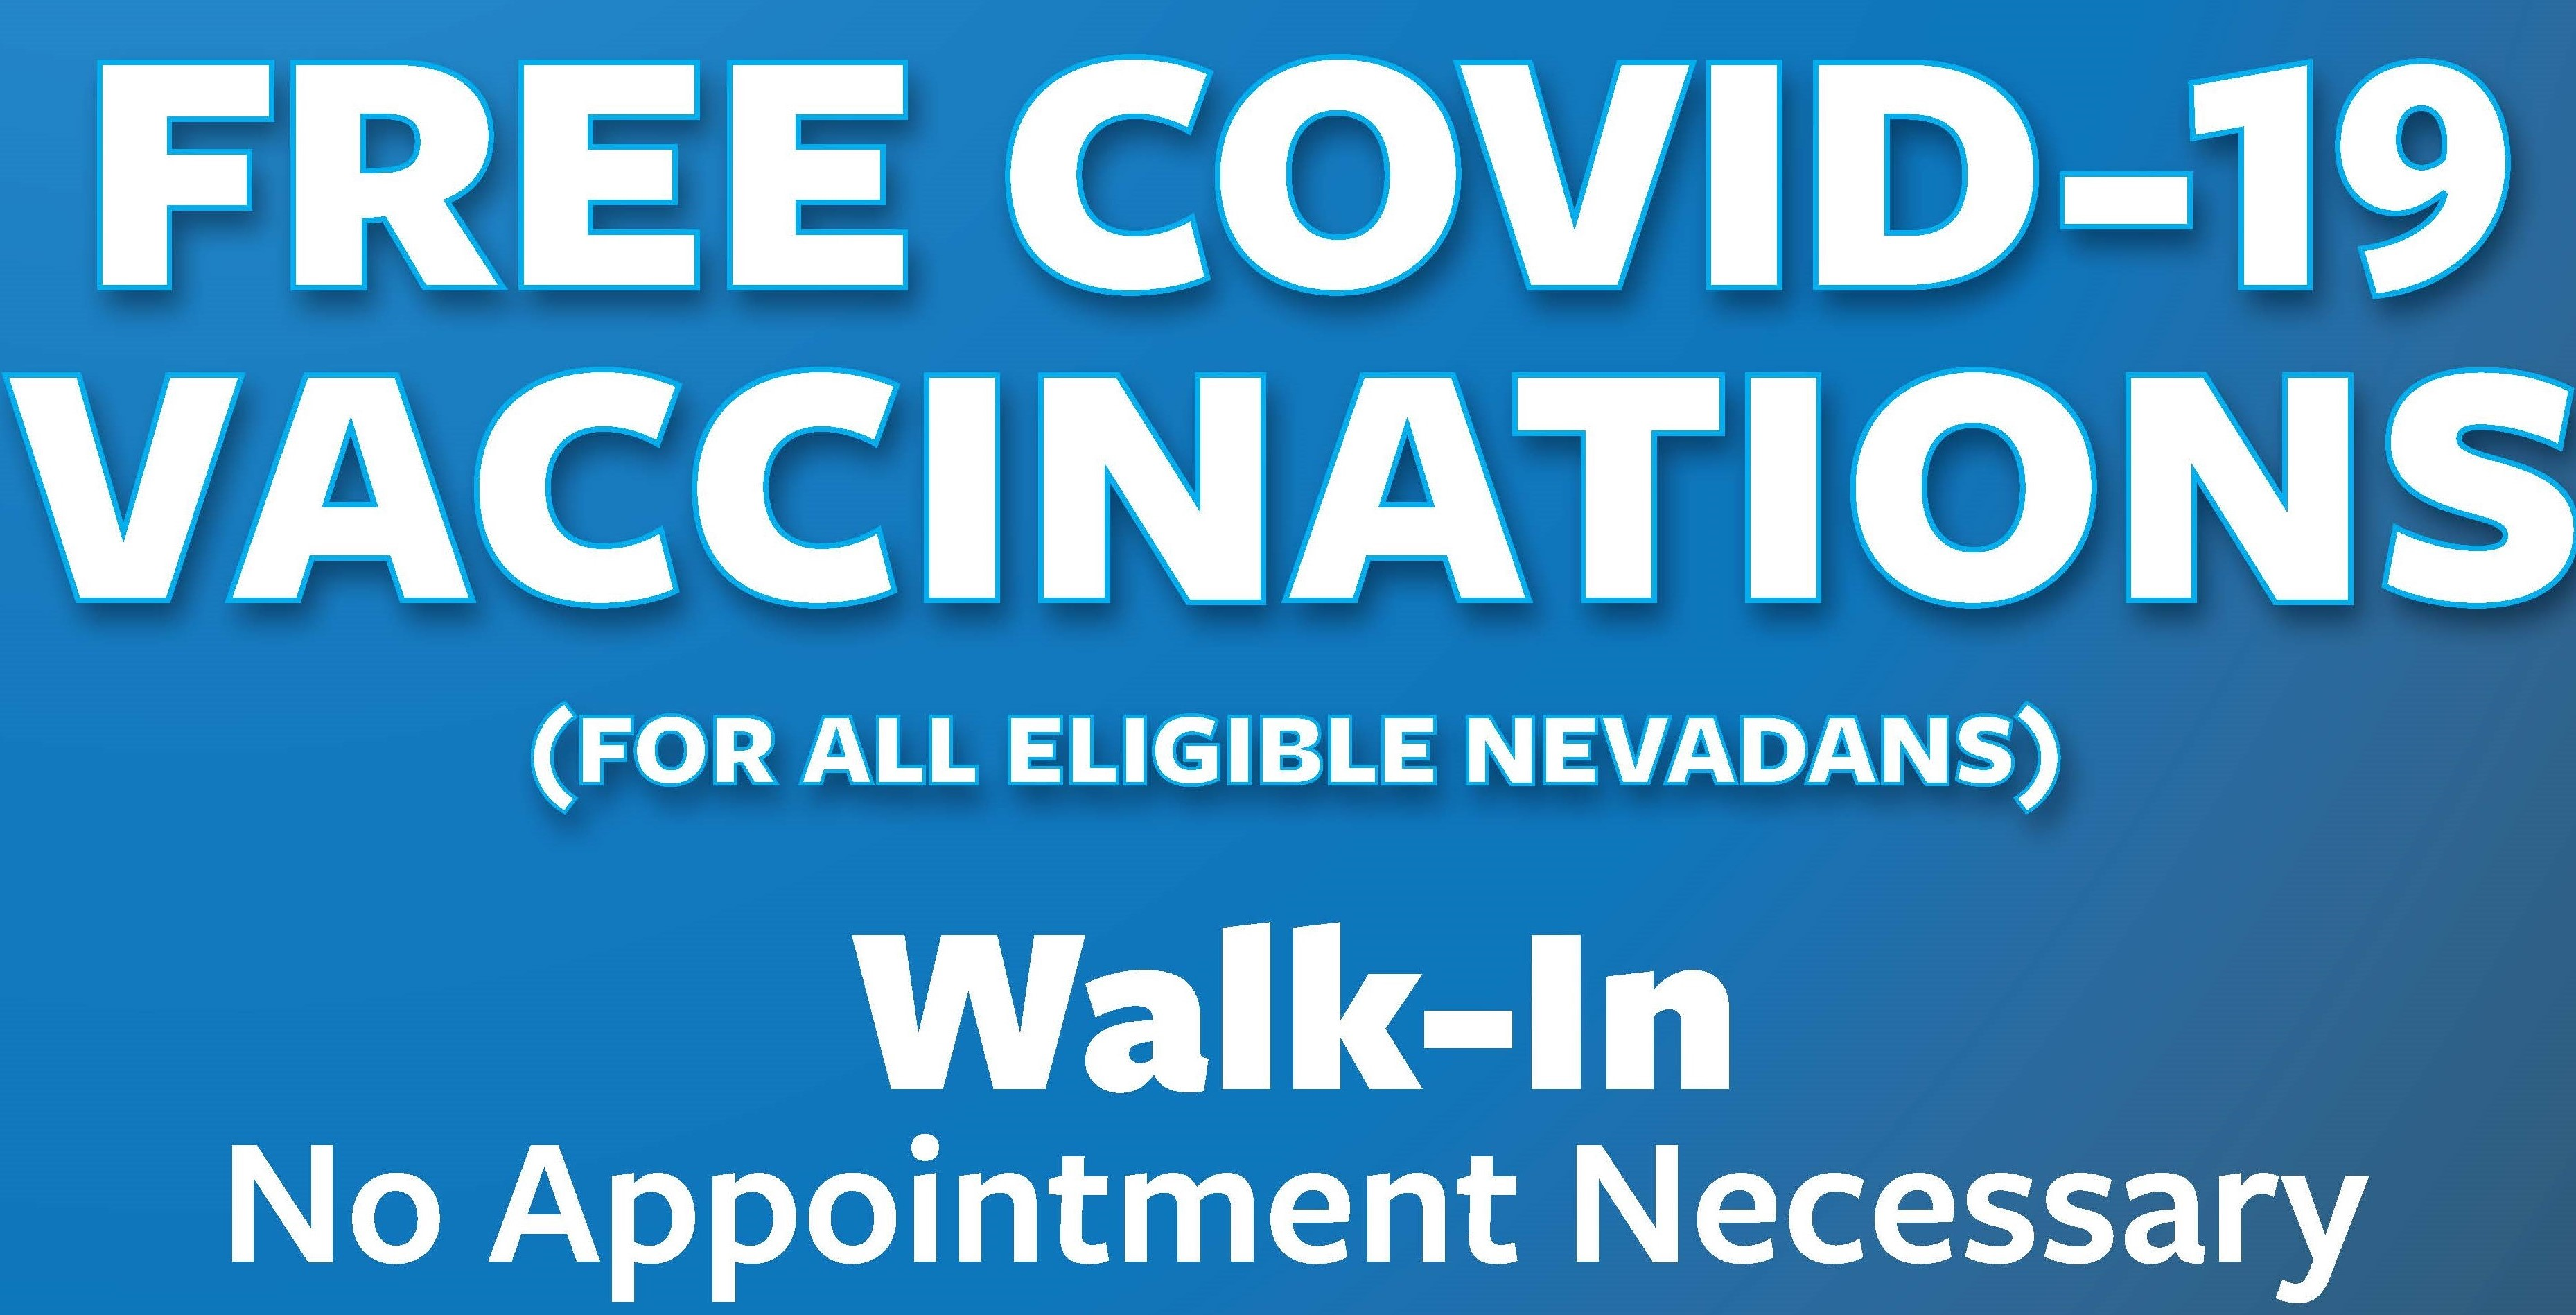 FREE COVID-19 VACCINATIONS